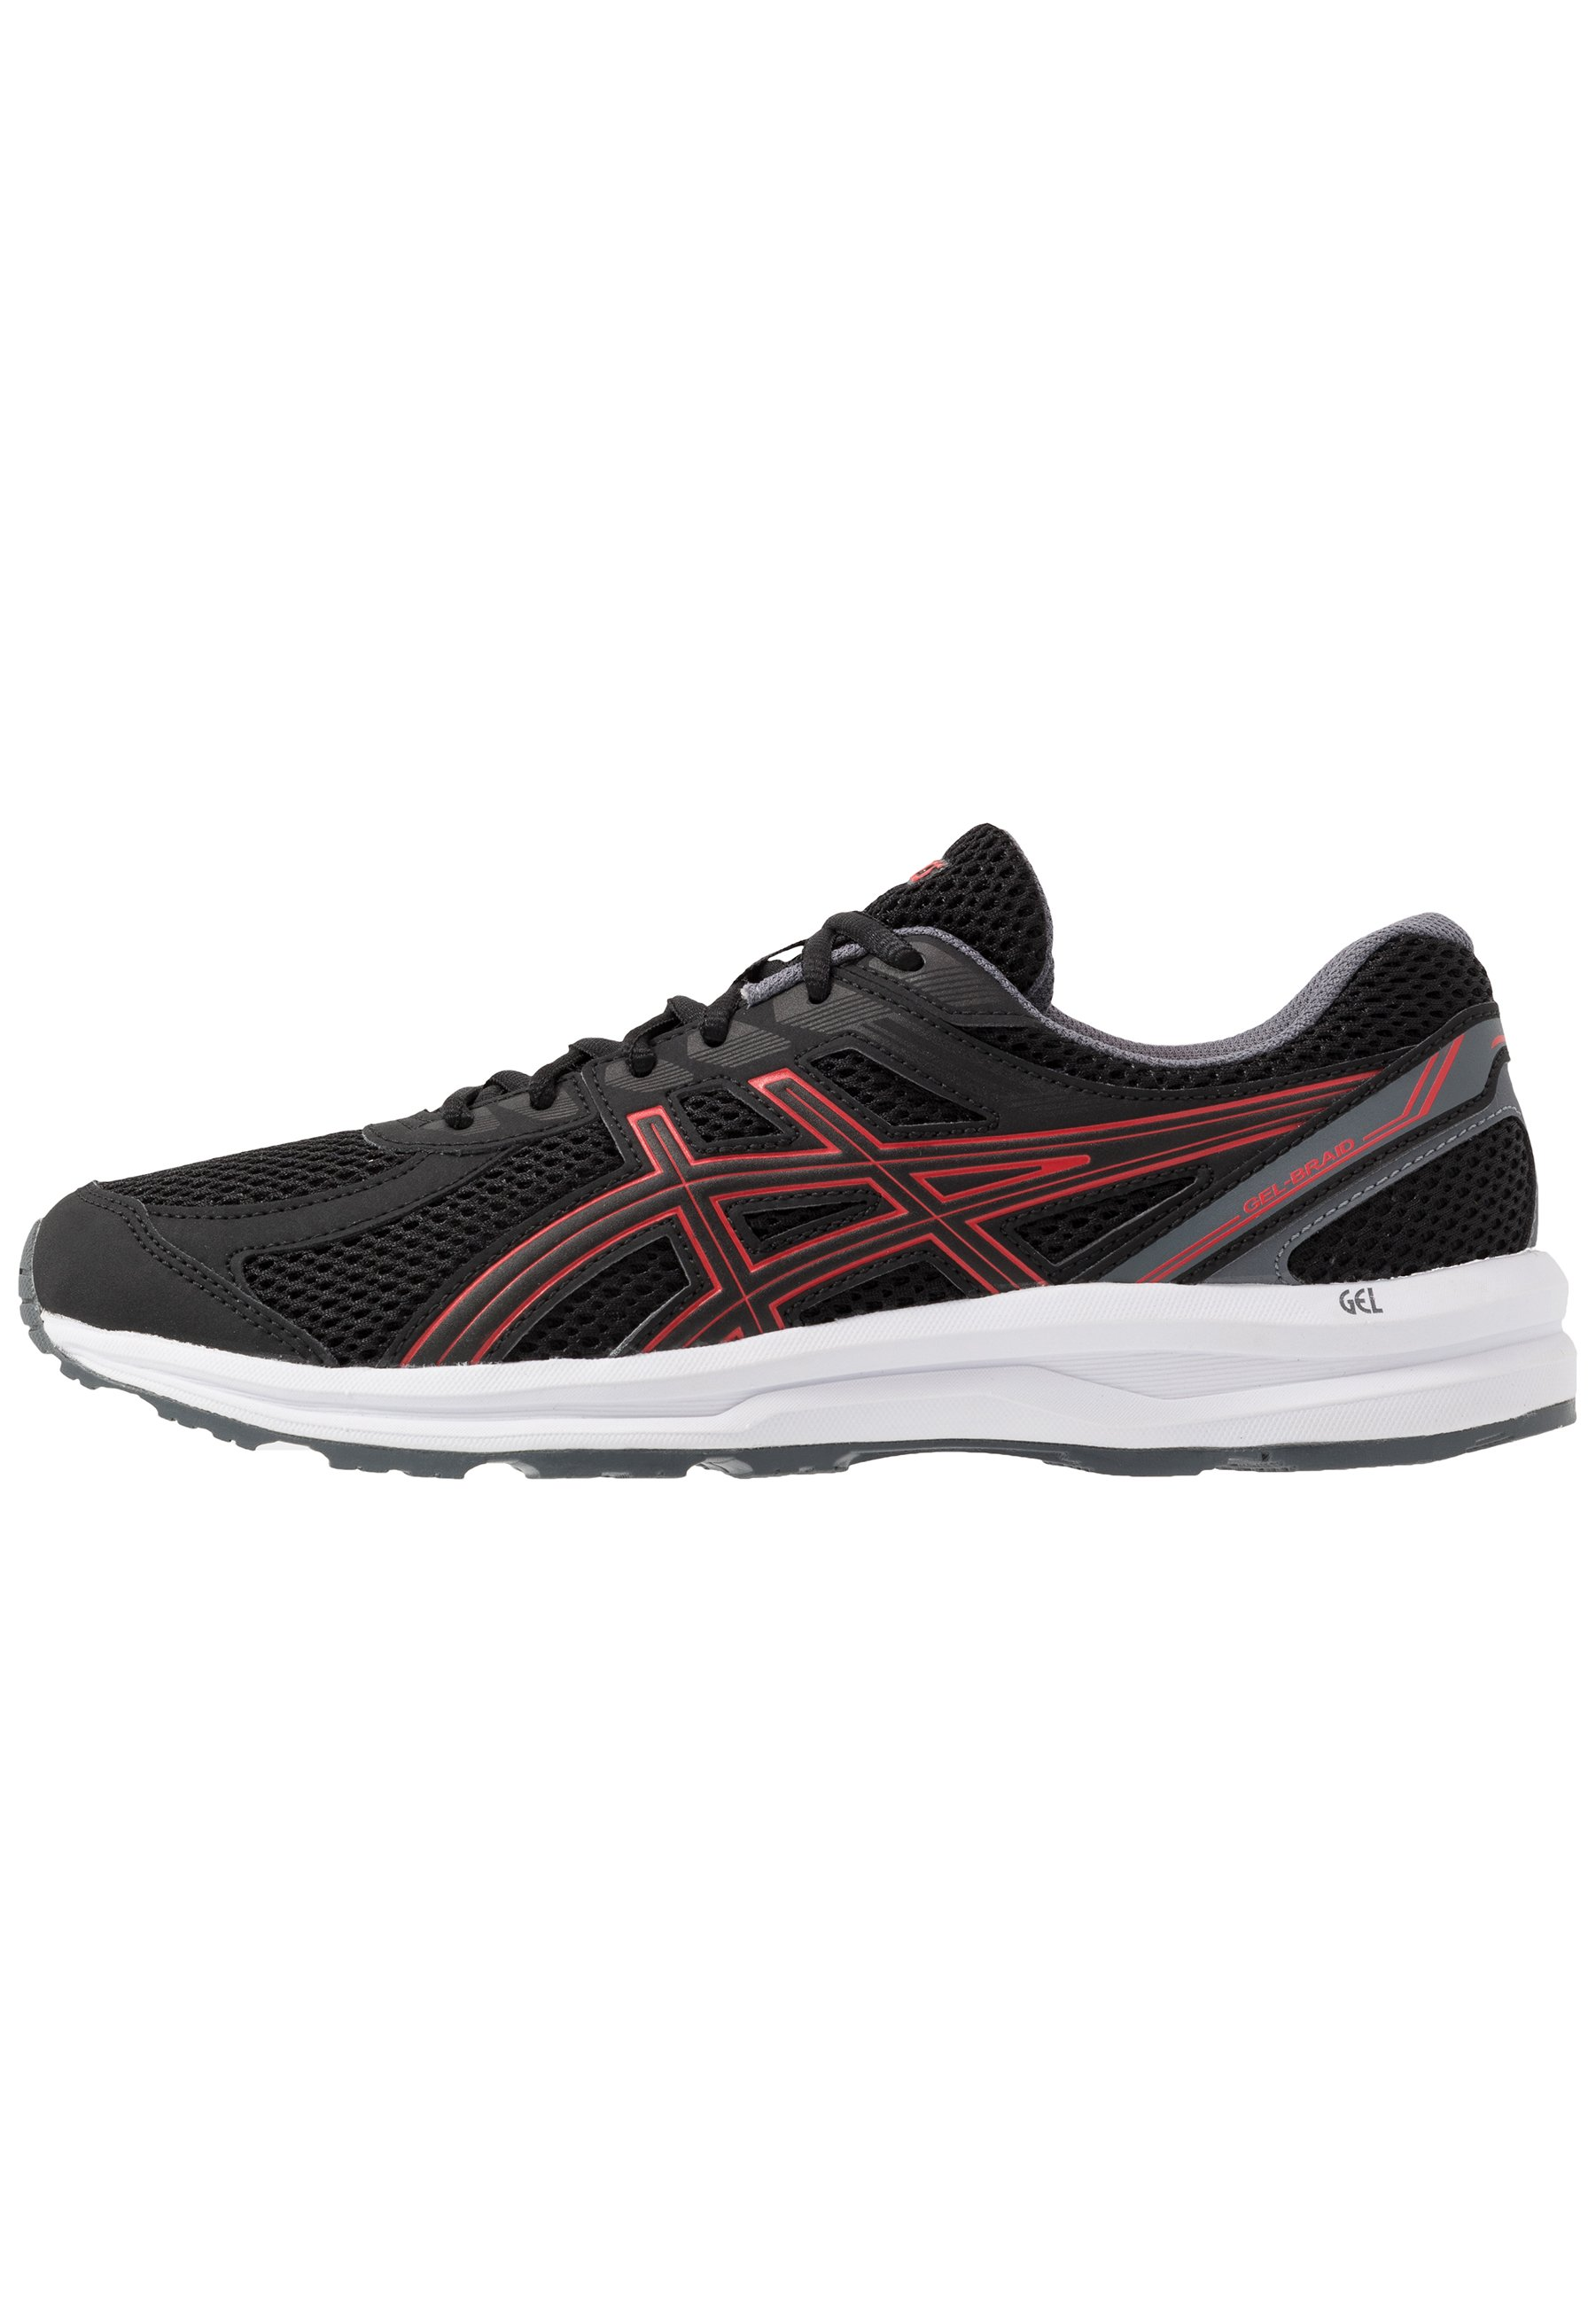 Asics Gel-braid - Laufschuh Neutral Electric Blue/black Black Friday